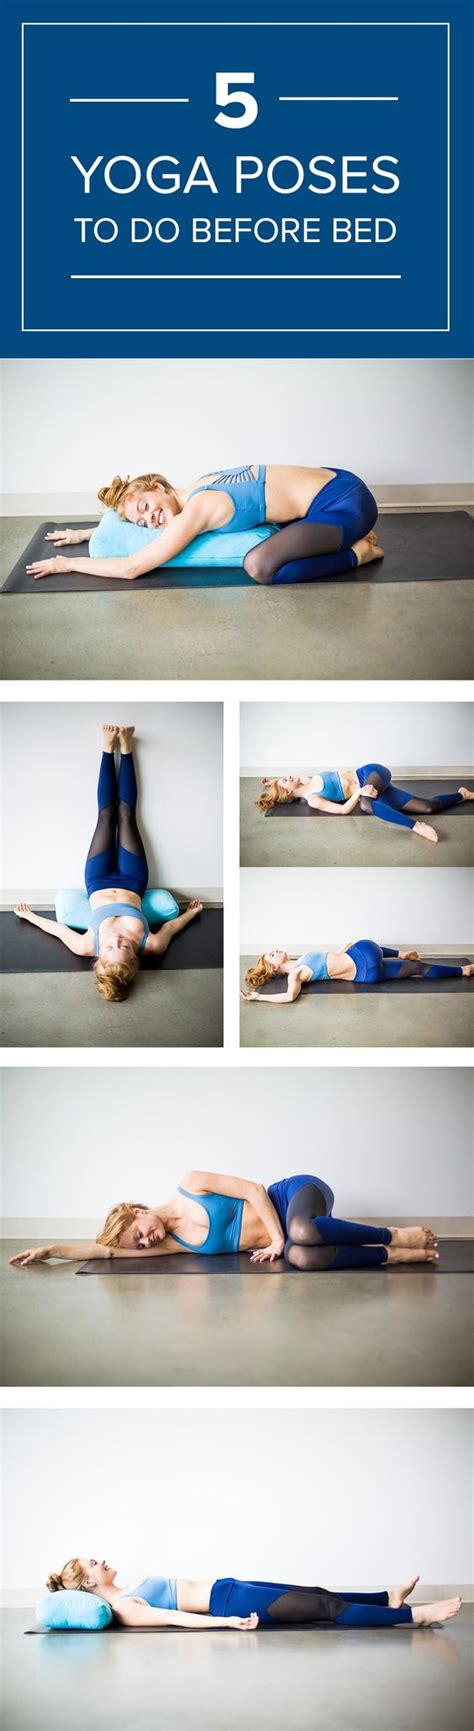 yoga poses before bed bedtime yoga poses to help you unwind